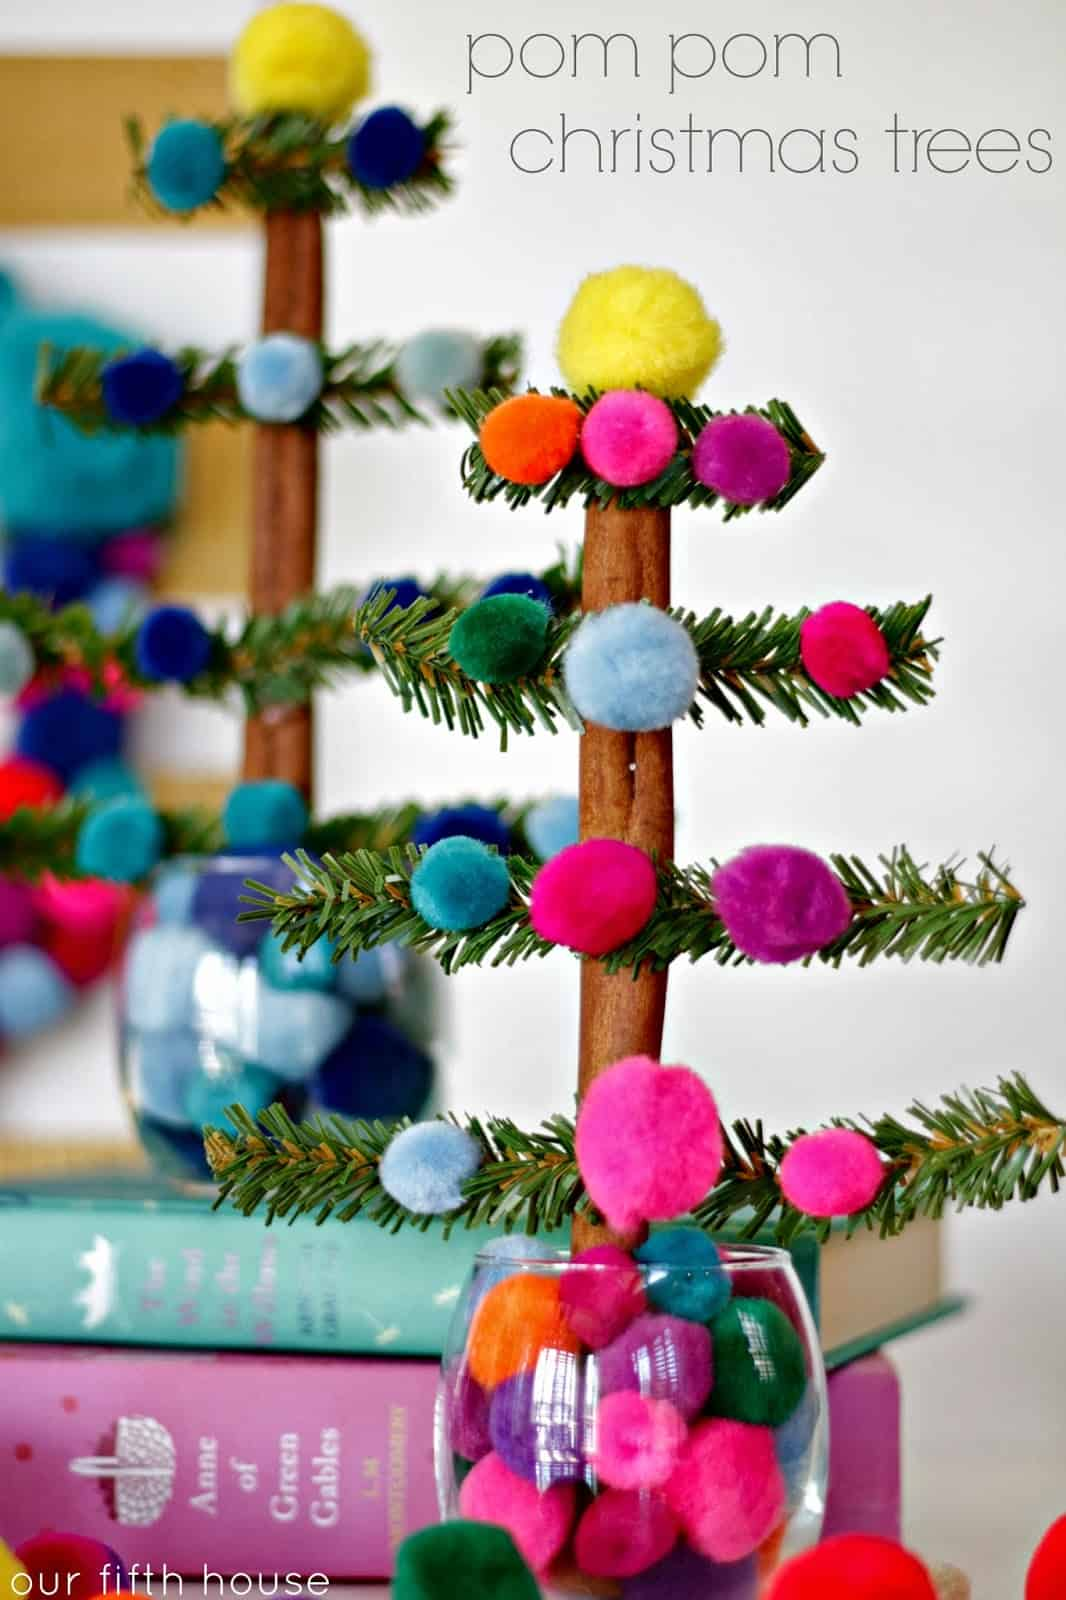 Pom pom and branch tree craft